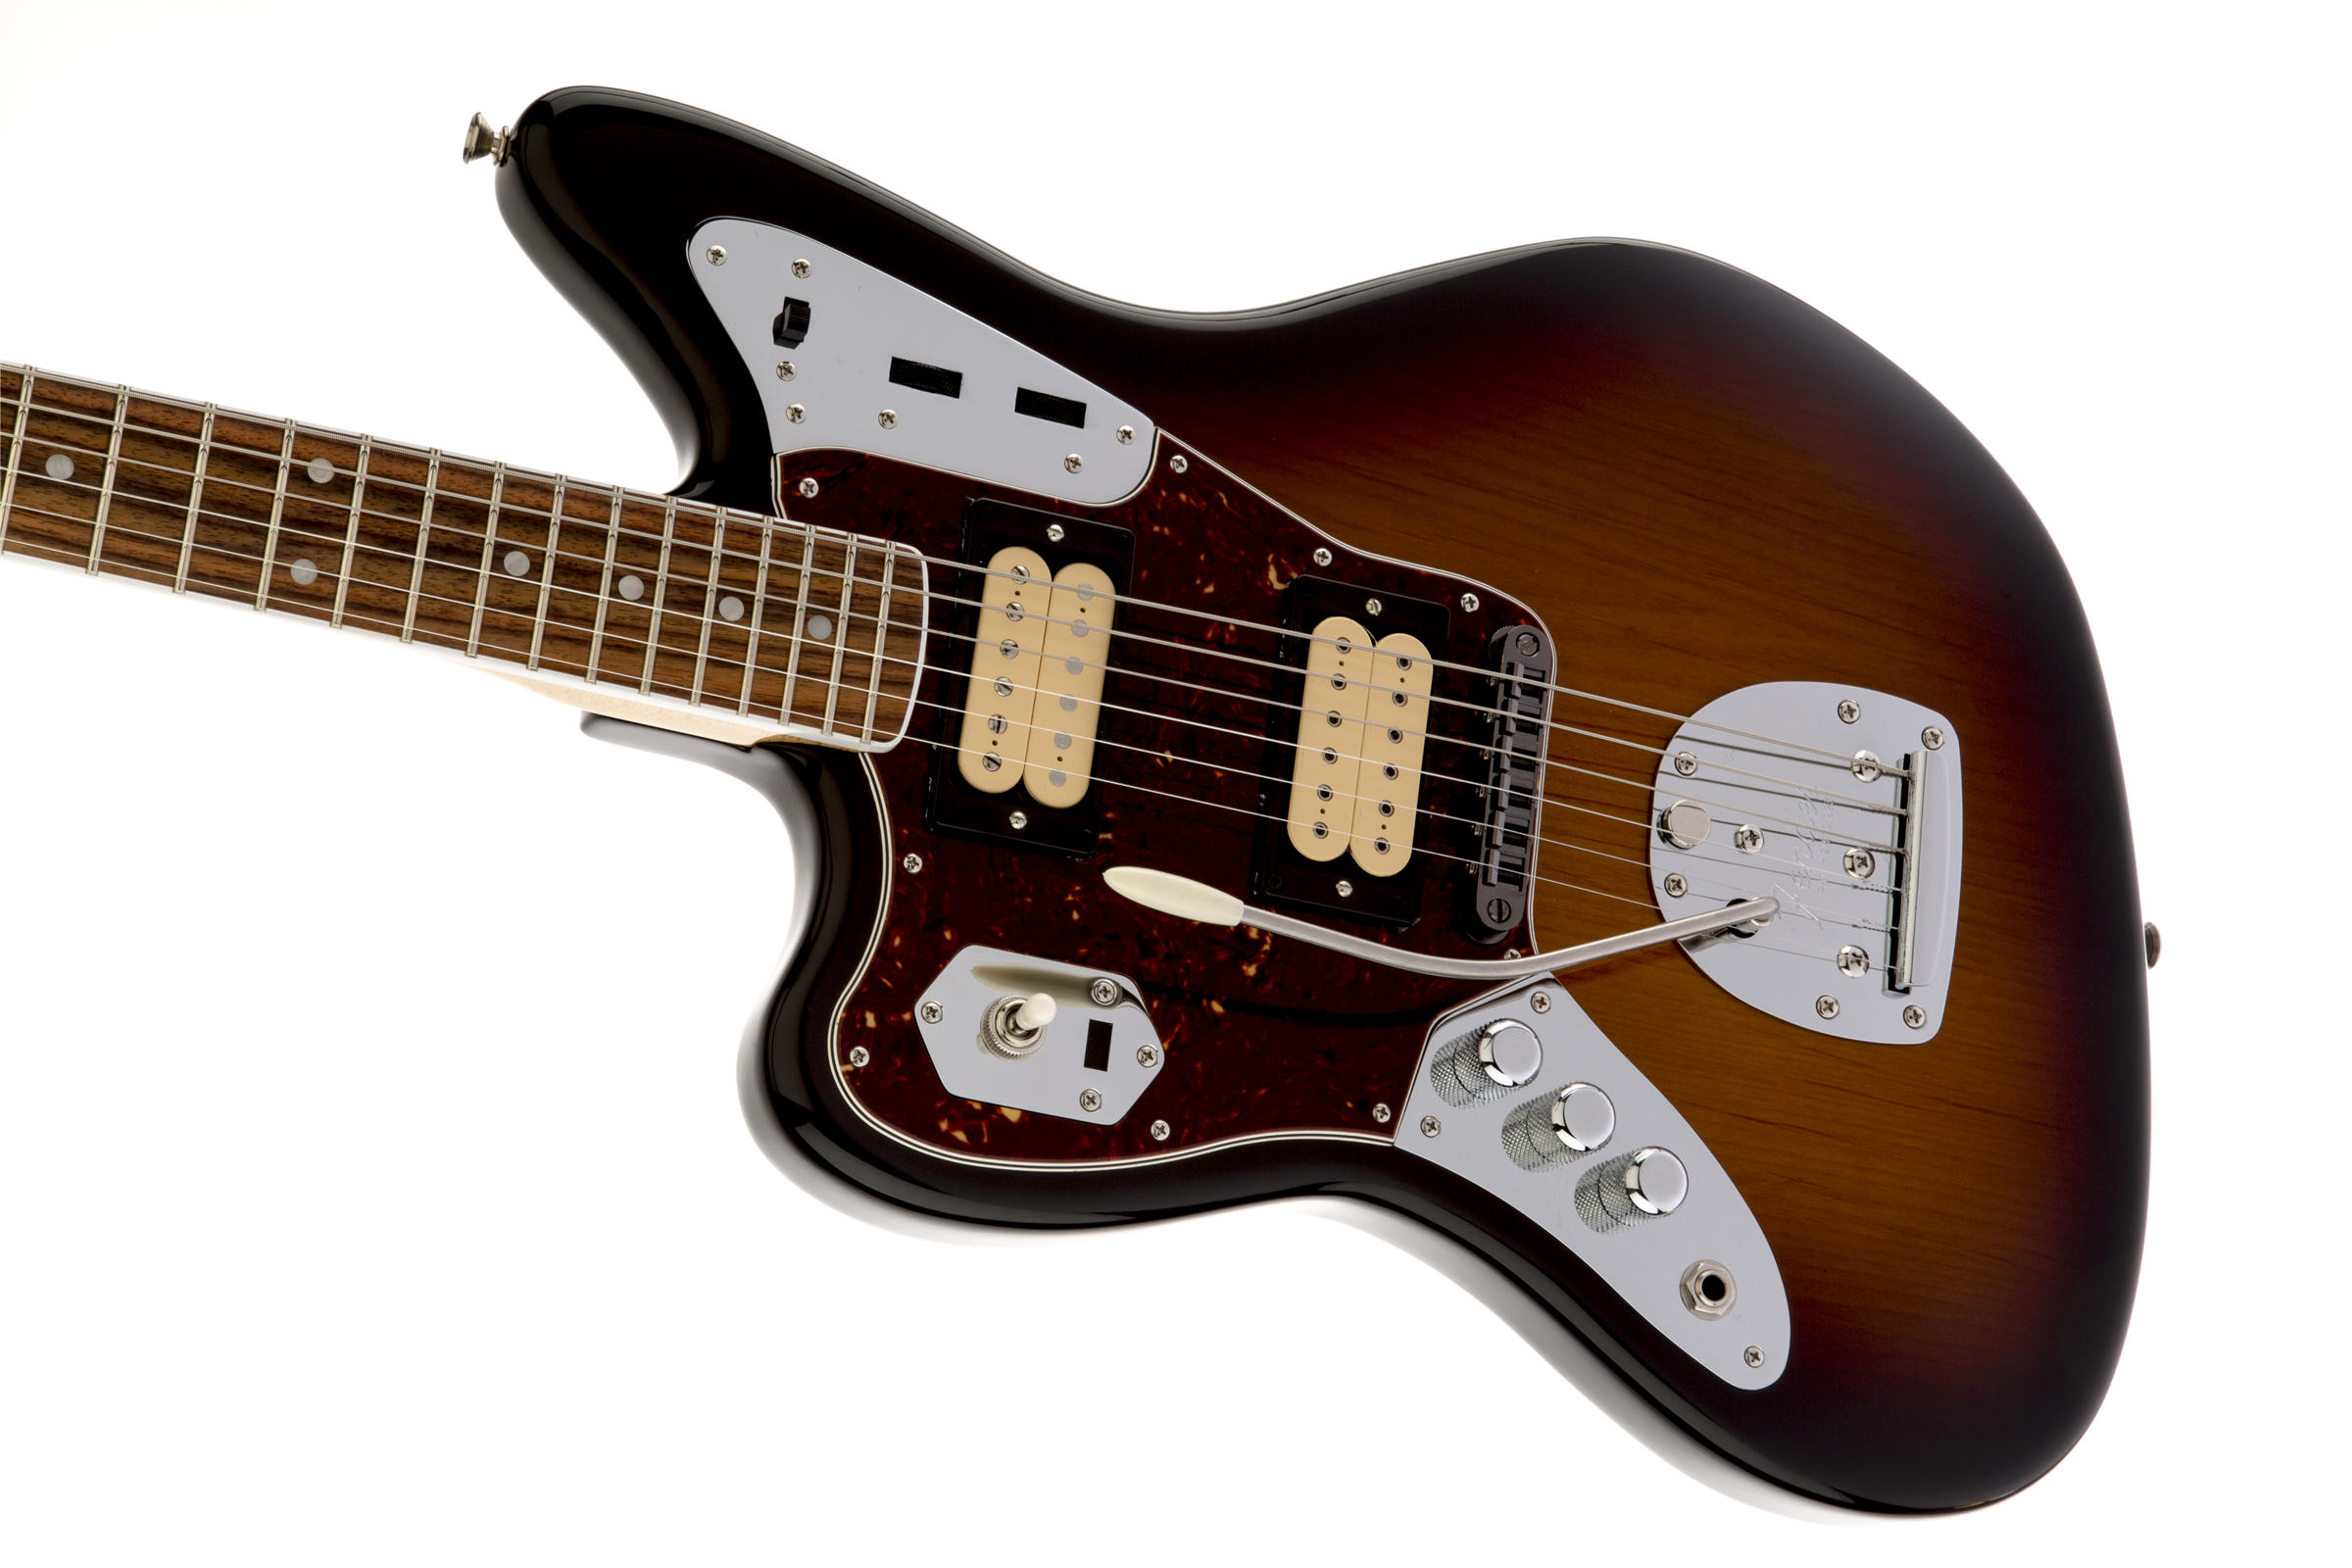 Kurt Cobain Jaguar Left-Handed, Rosewood Fingerboard, 3-Color Sunburst追加画像